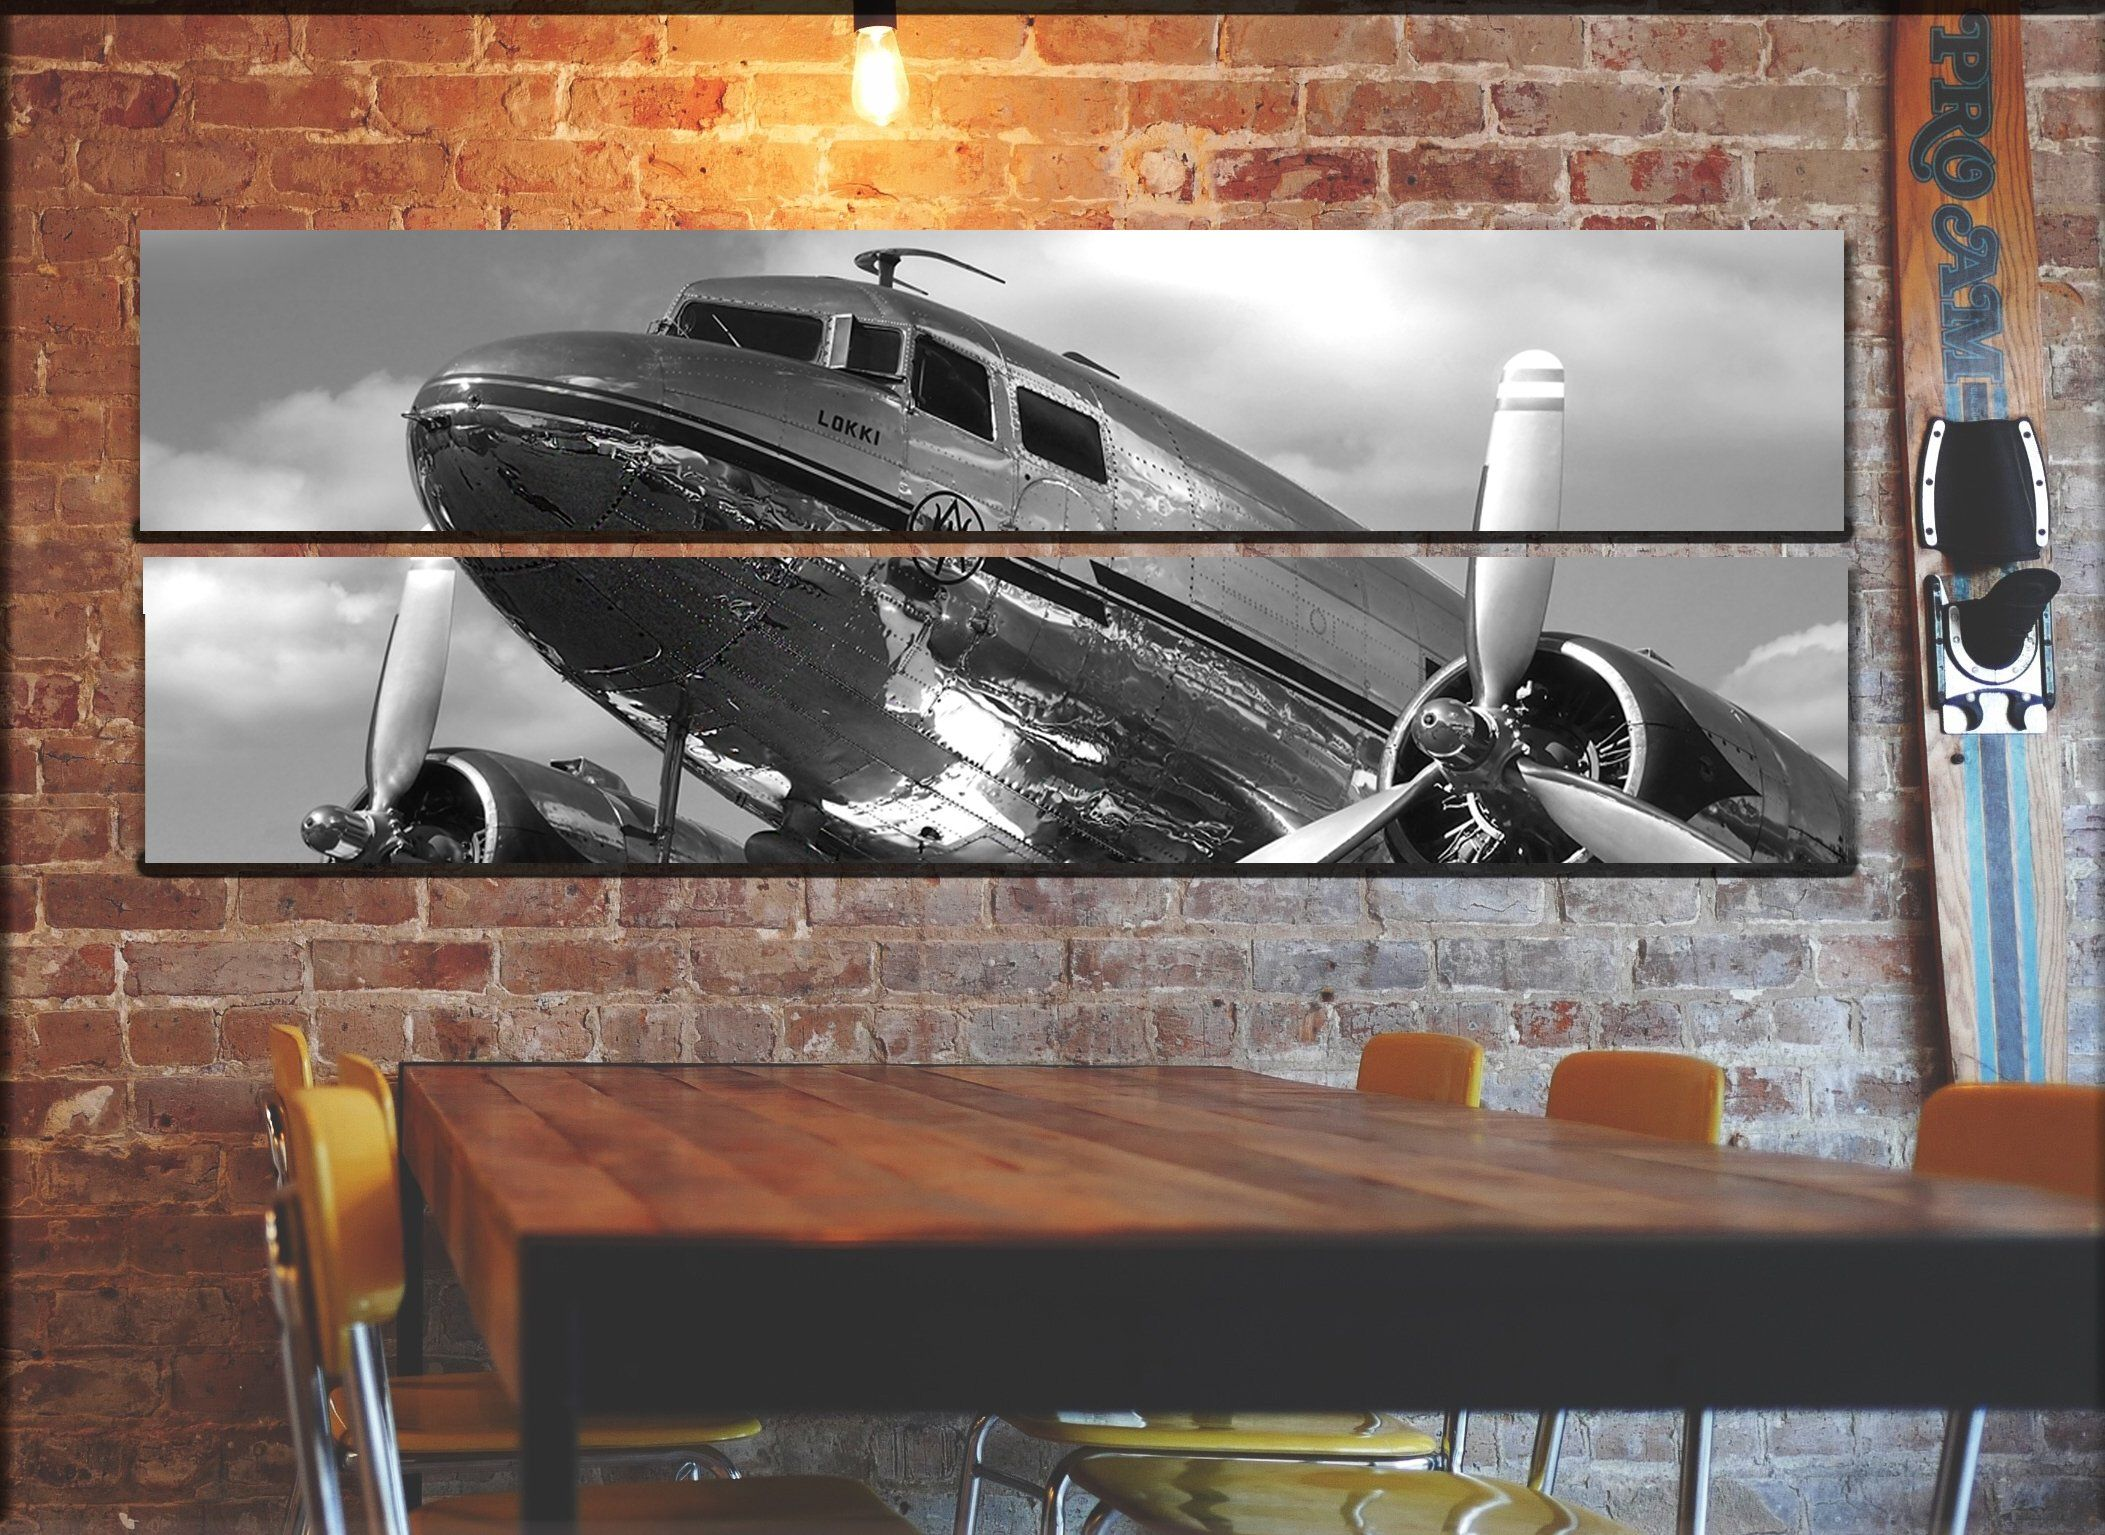 Large Vintage Airplane Wall Art Decor Vintage Aircraft Picture On Canvas Panels Aviation Wall Art Airplane Wall Art Vintage Airplane Wall Art Etsy Wall Art